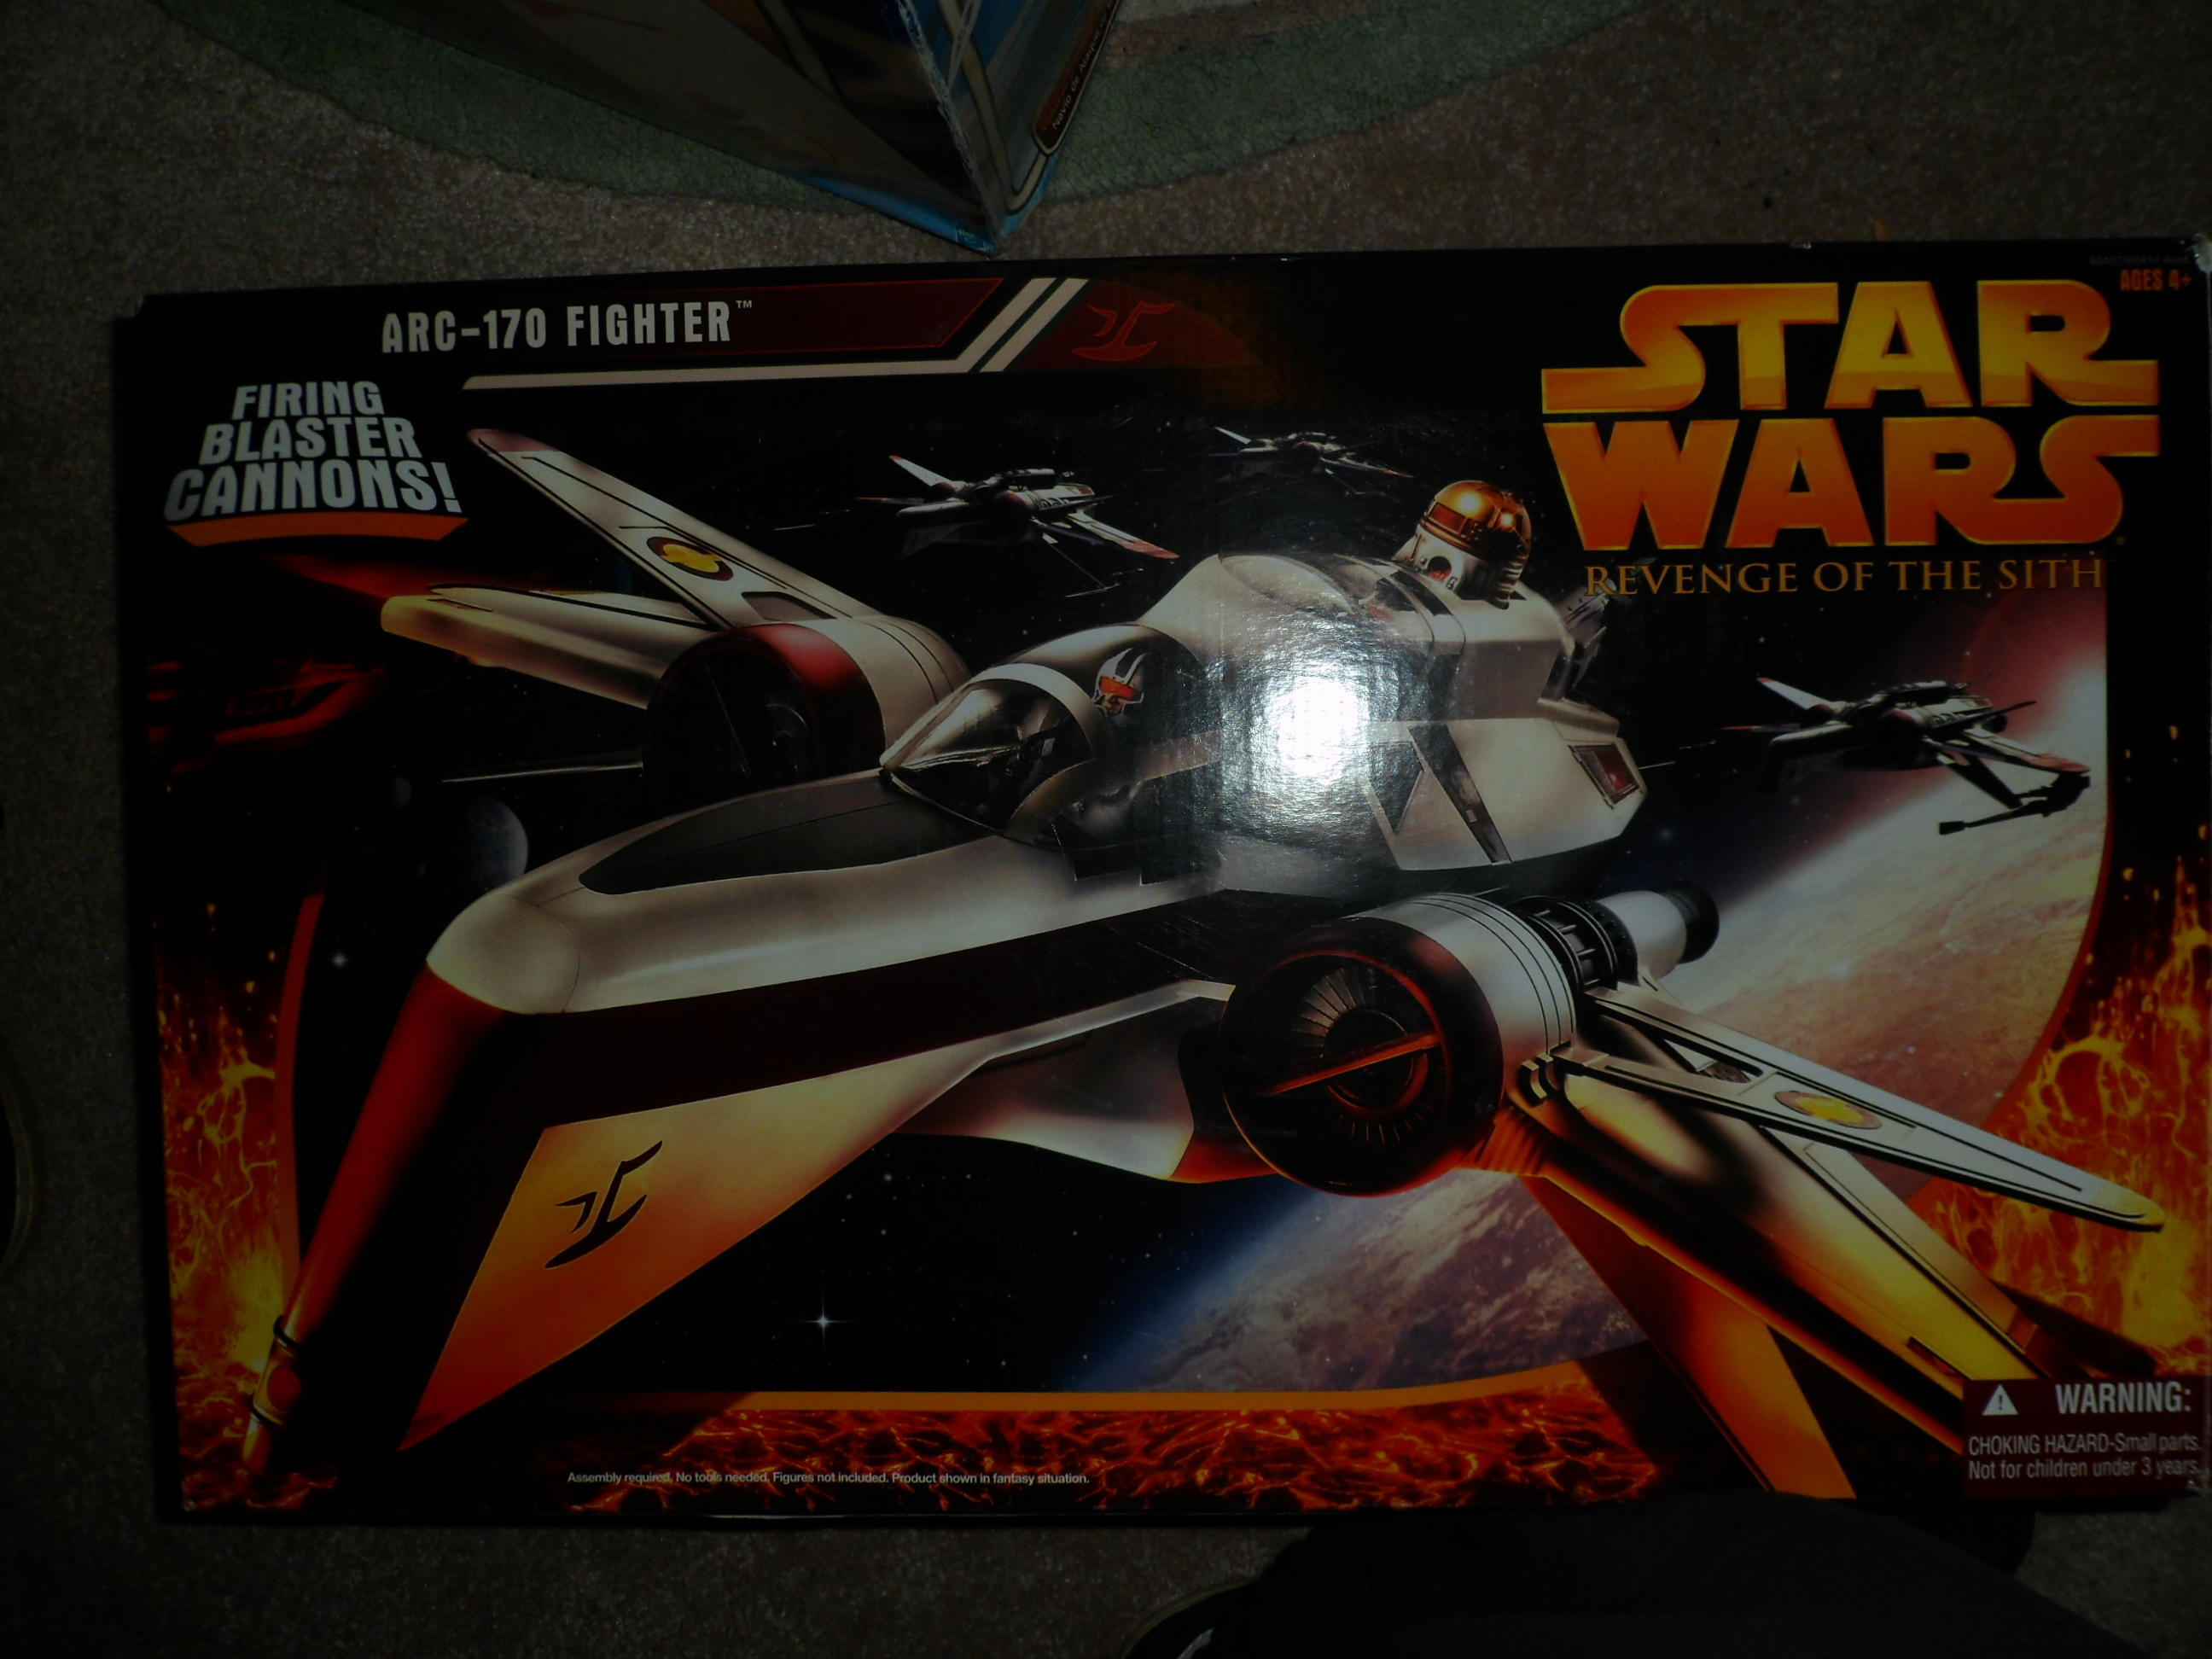 STAR WARS REVENGE OF THE SITH ARC -170 FIGHTER